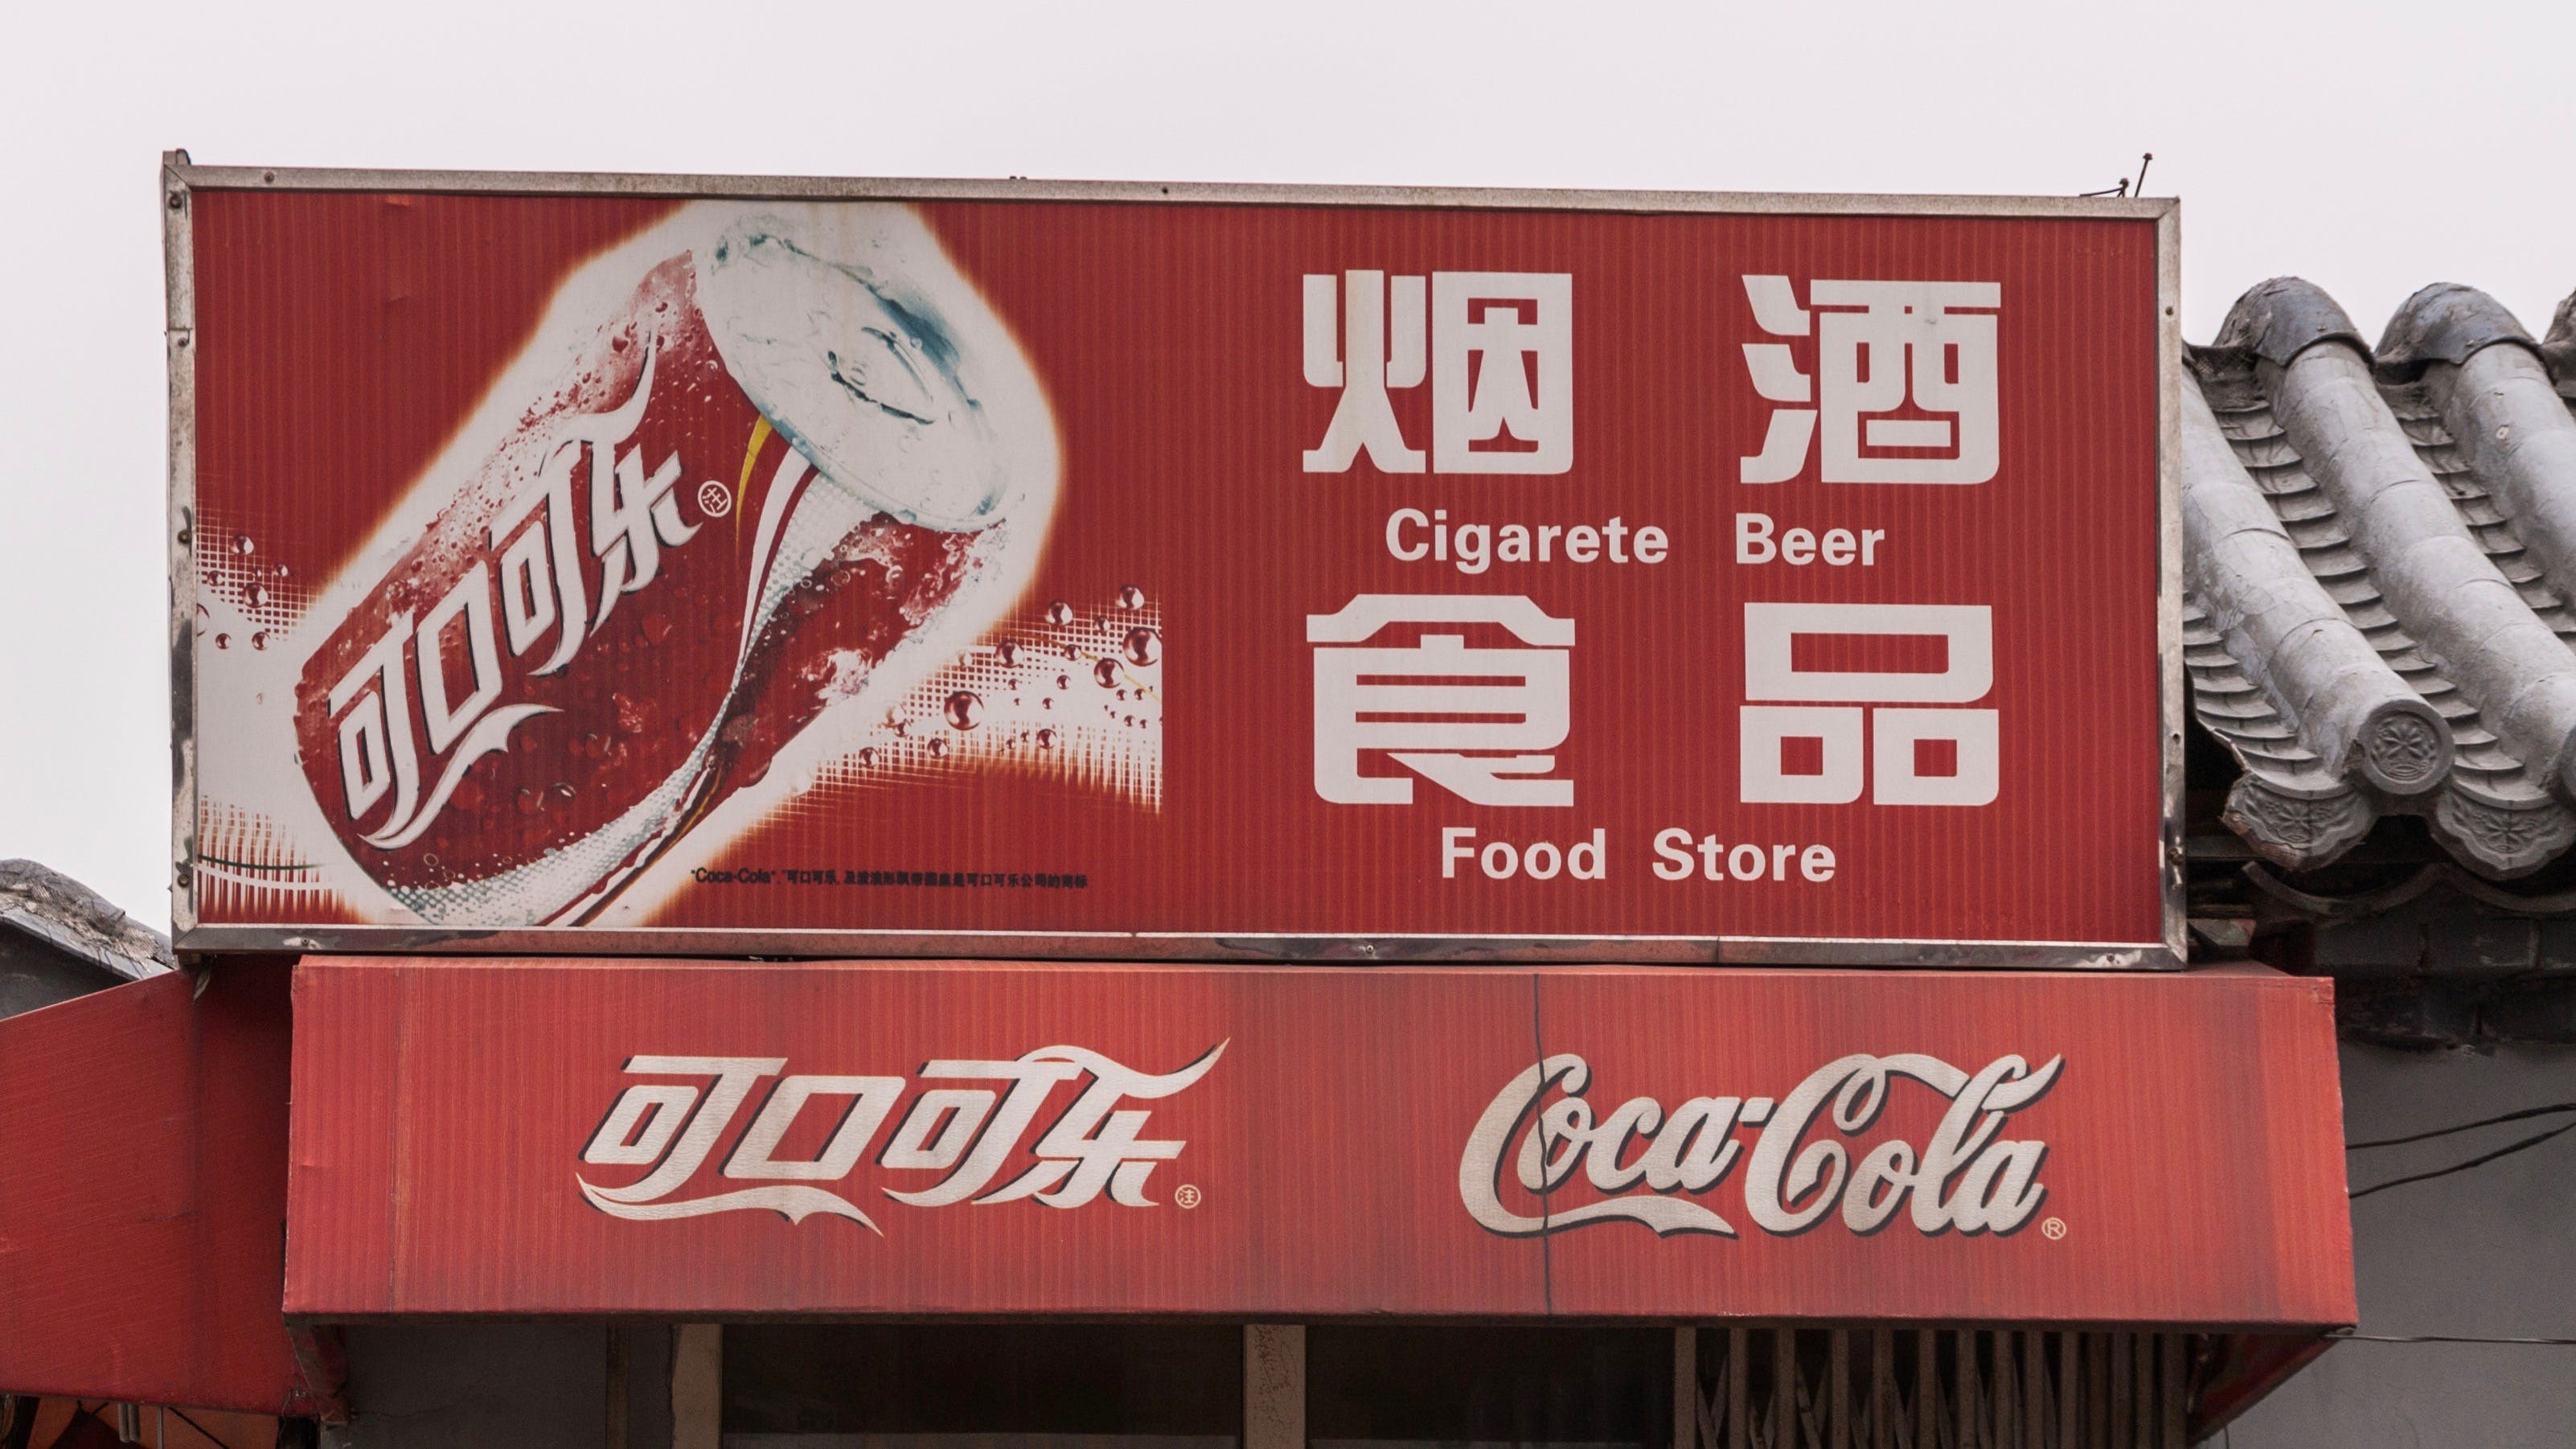 Big food giants manipulate public health policy in China